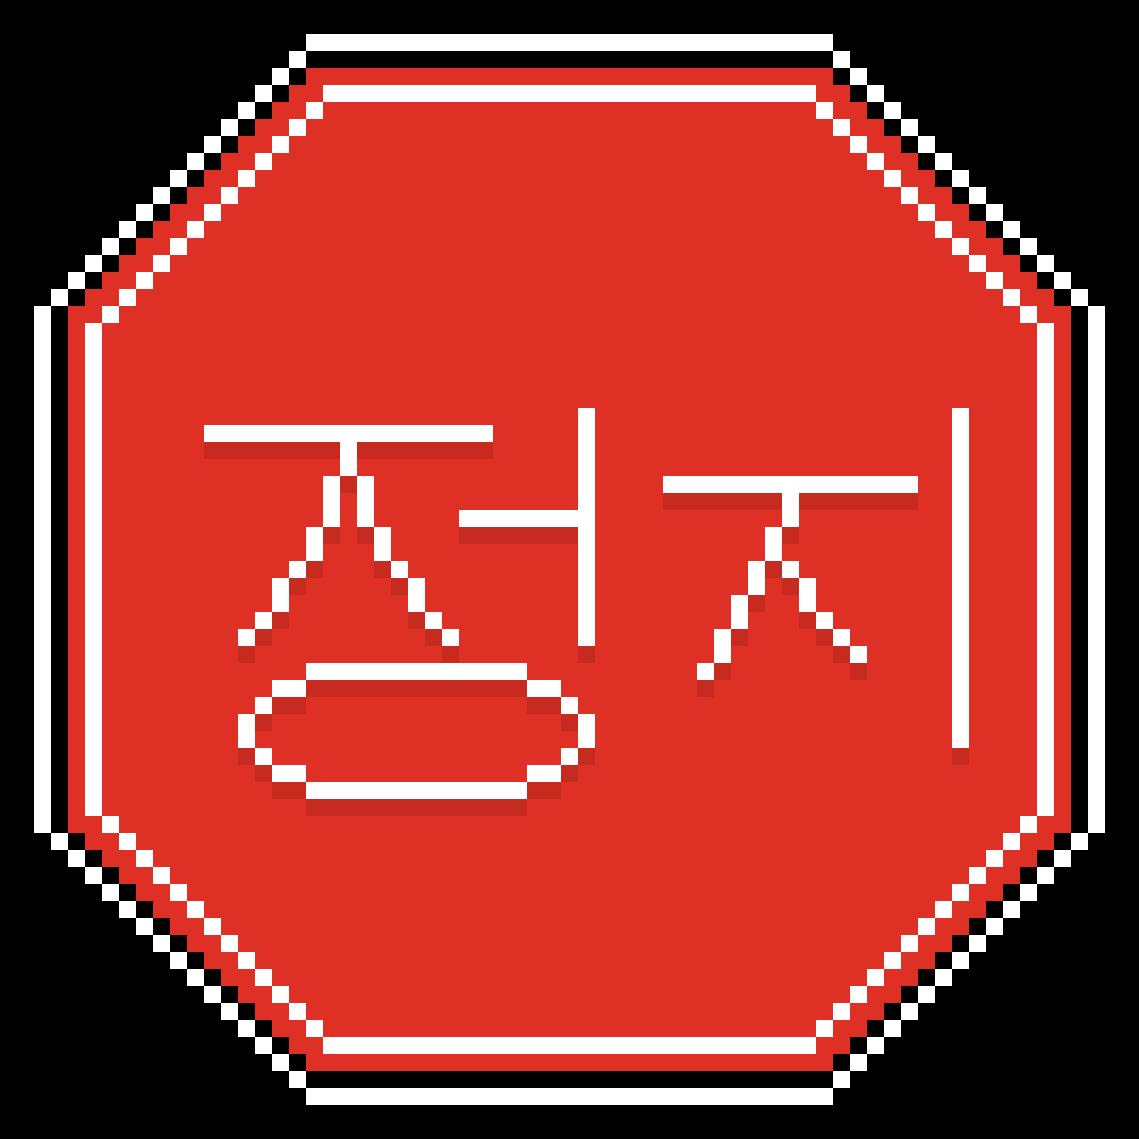 Pixilart Japanese Stop Sign By Artzeus